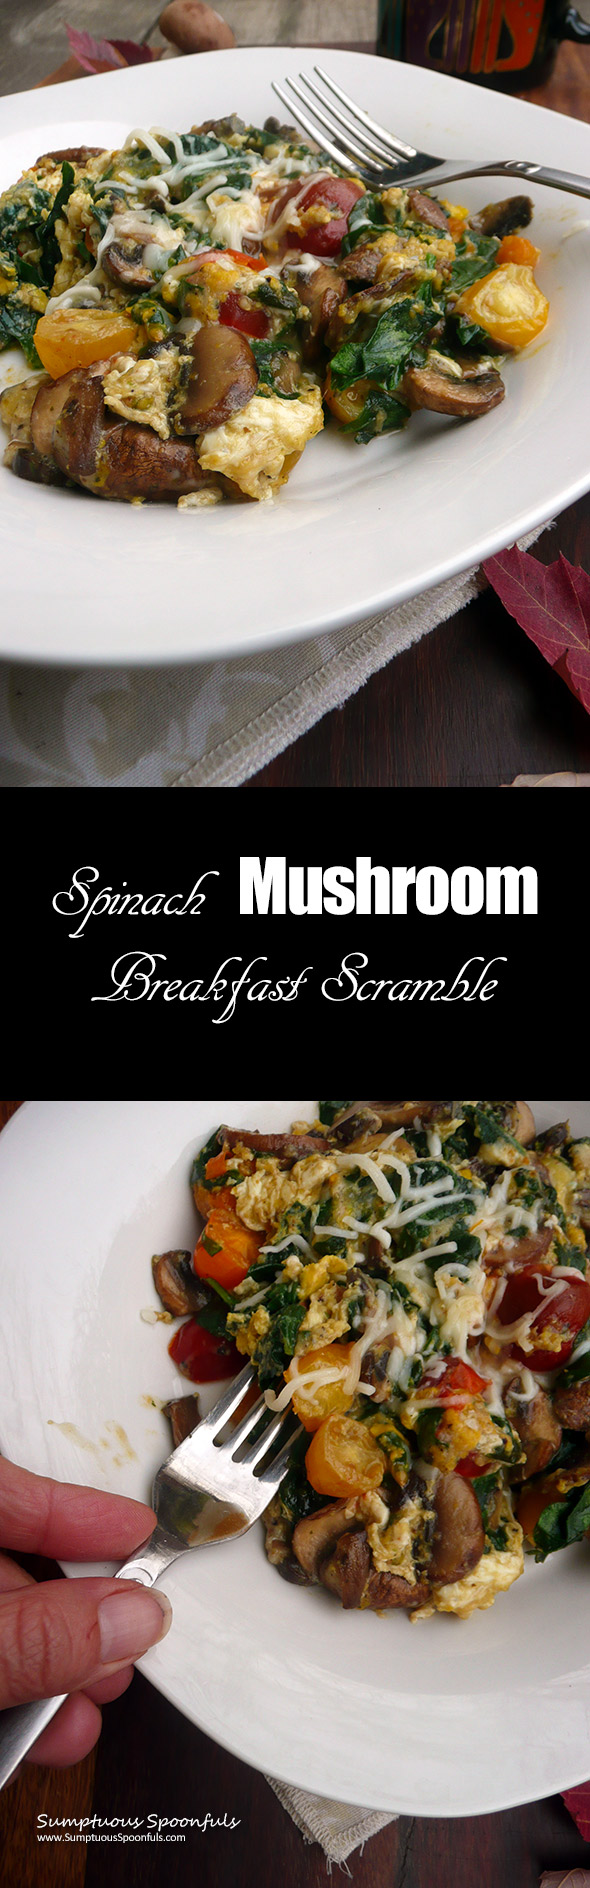 Spinach Mushroom Breakfast Scramble ~Sumptuous Spoonfuls #easy #healthy #delicious #breakfast #recipe